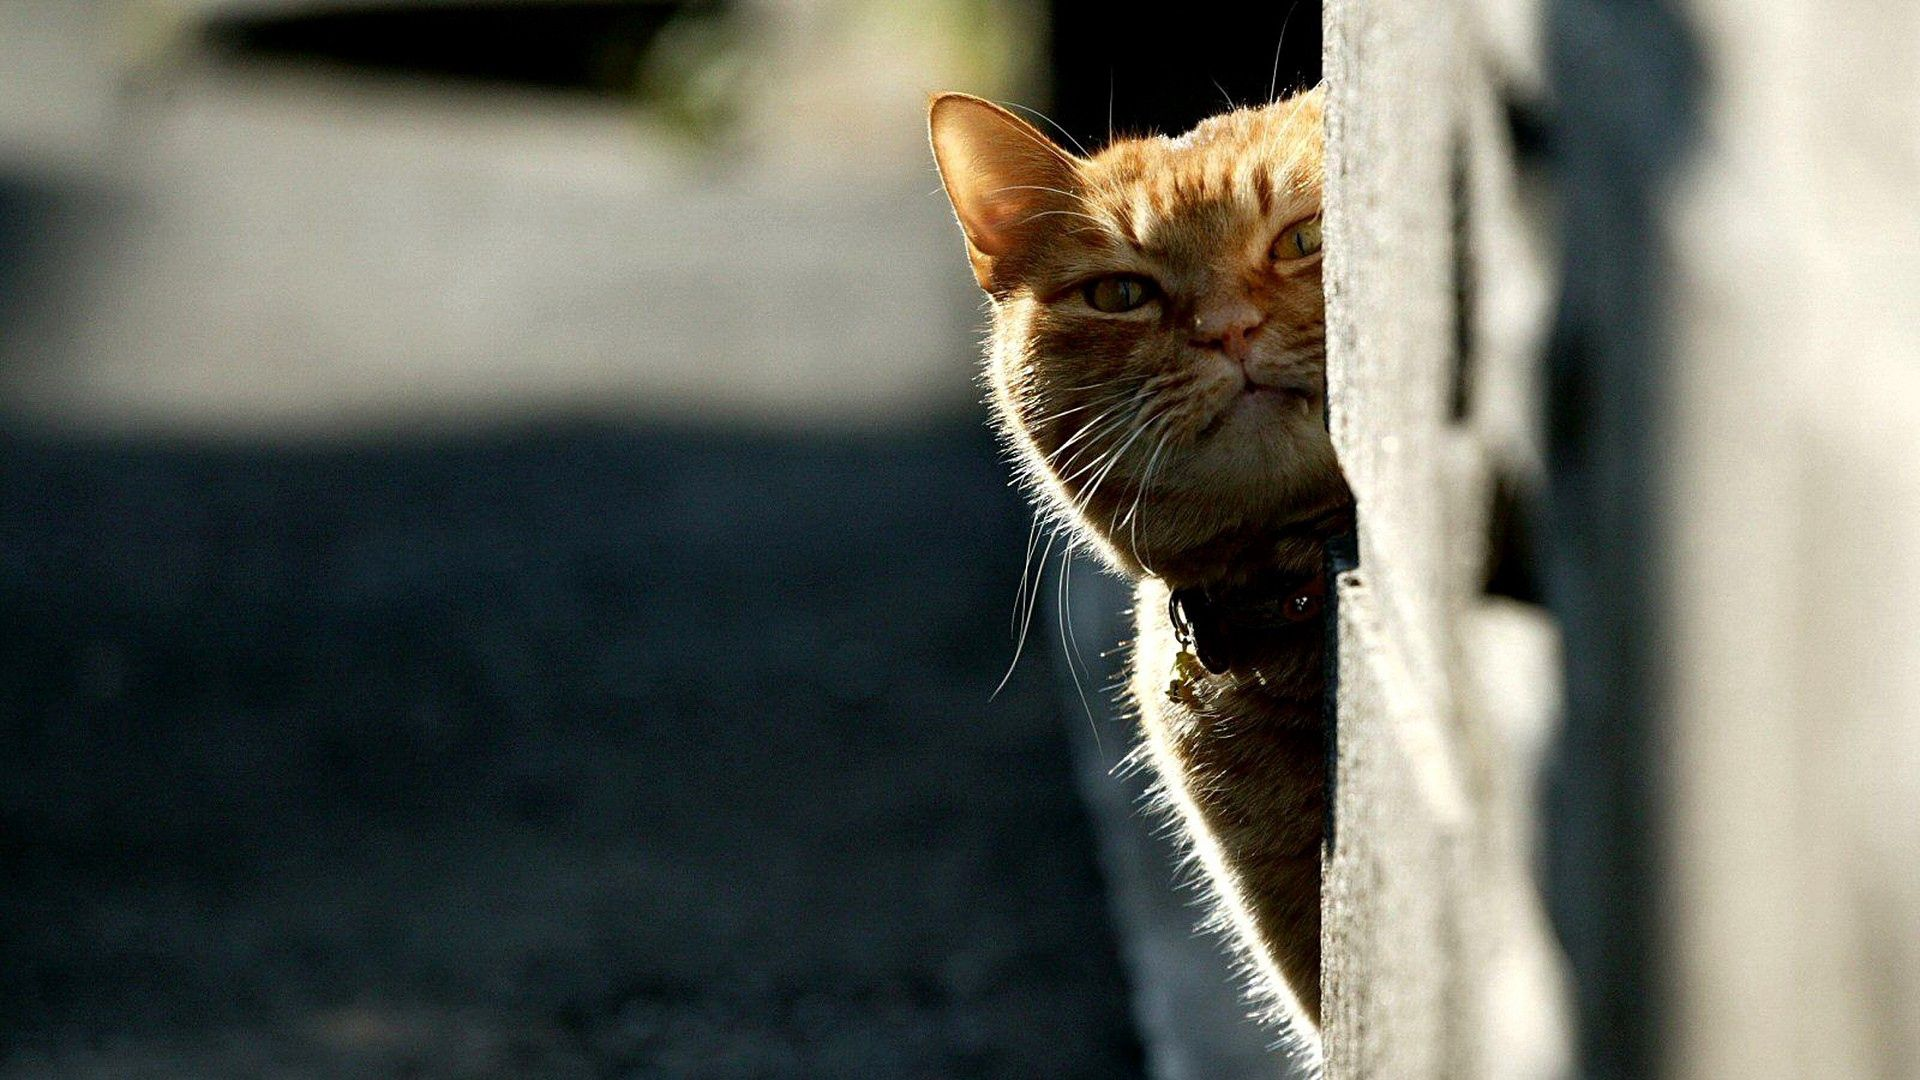 137181 download wallpaper Animals, Cat, Peek Out, Look Out, Shadow, Muzzle screensavers and pictures for free